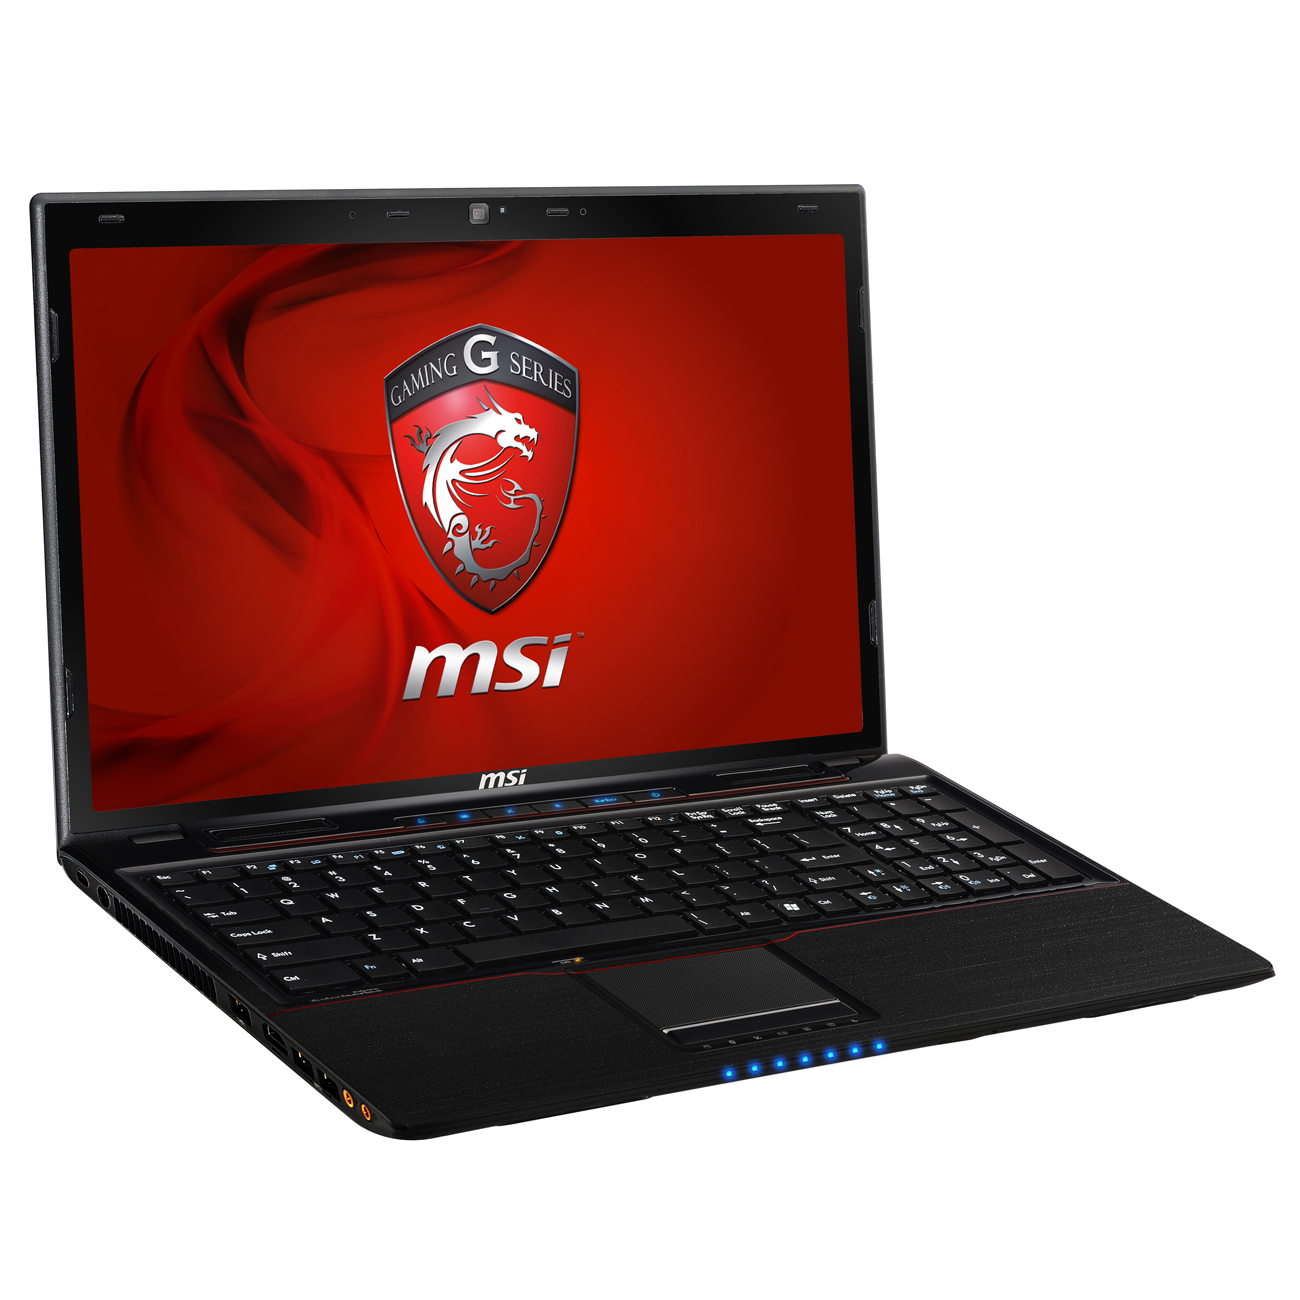 "PC portable MSI GE60 0ND-277FR Intel Core i7-3630QM 8 Go 750 Go 15.6"" LED NVIDIA GeForce GTX 660M Graveur DVD Wi-Fi N/Bluetooth Webcam Windows 8 (garantie constructeur 2 ans)"